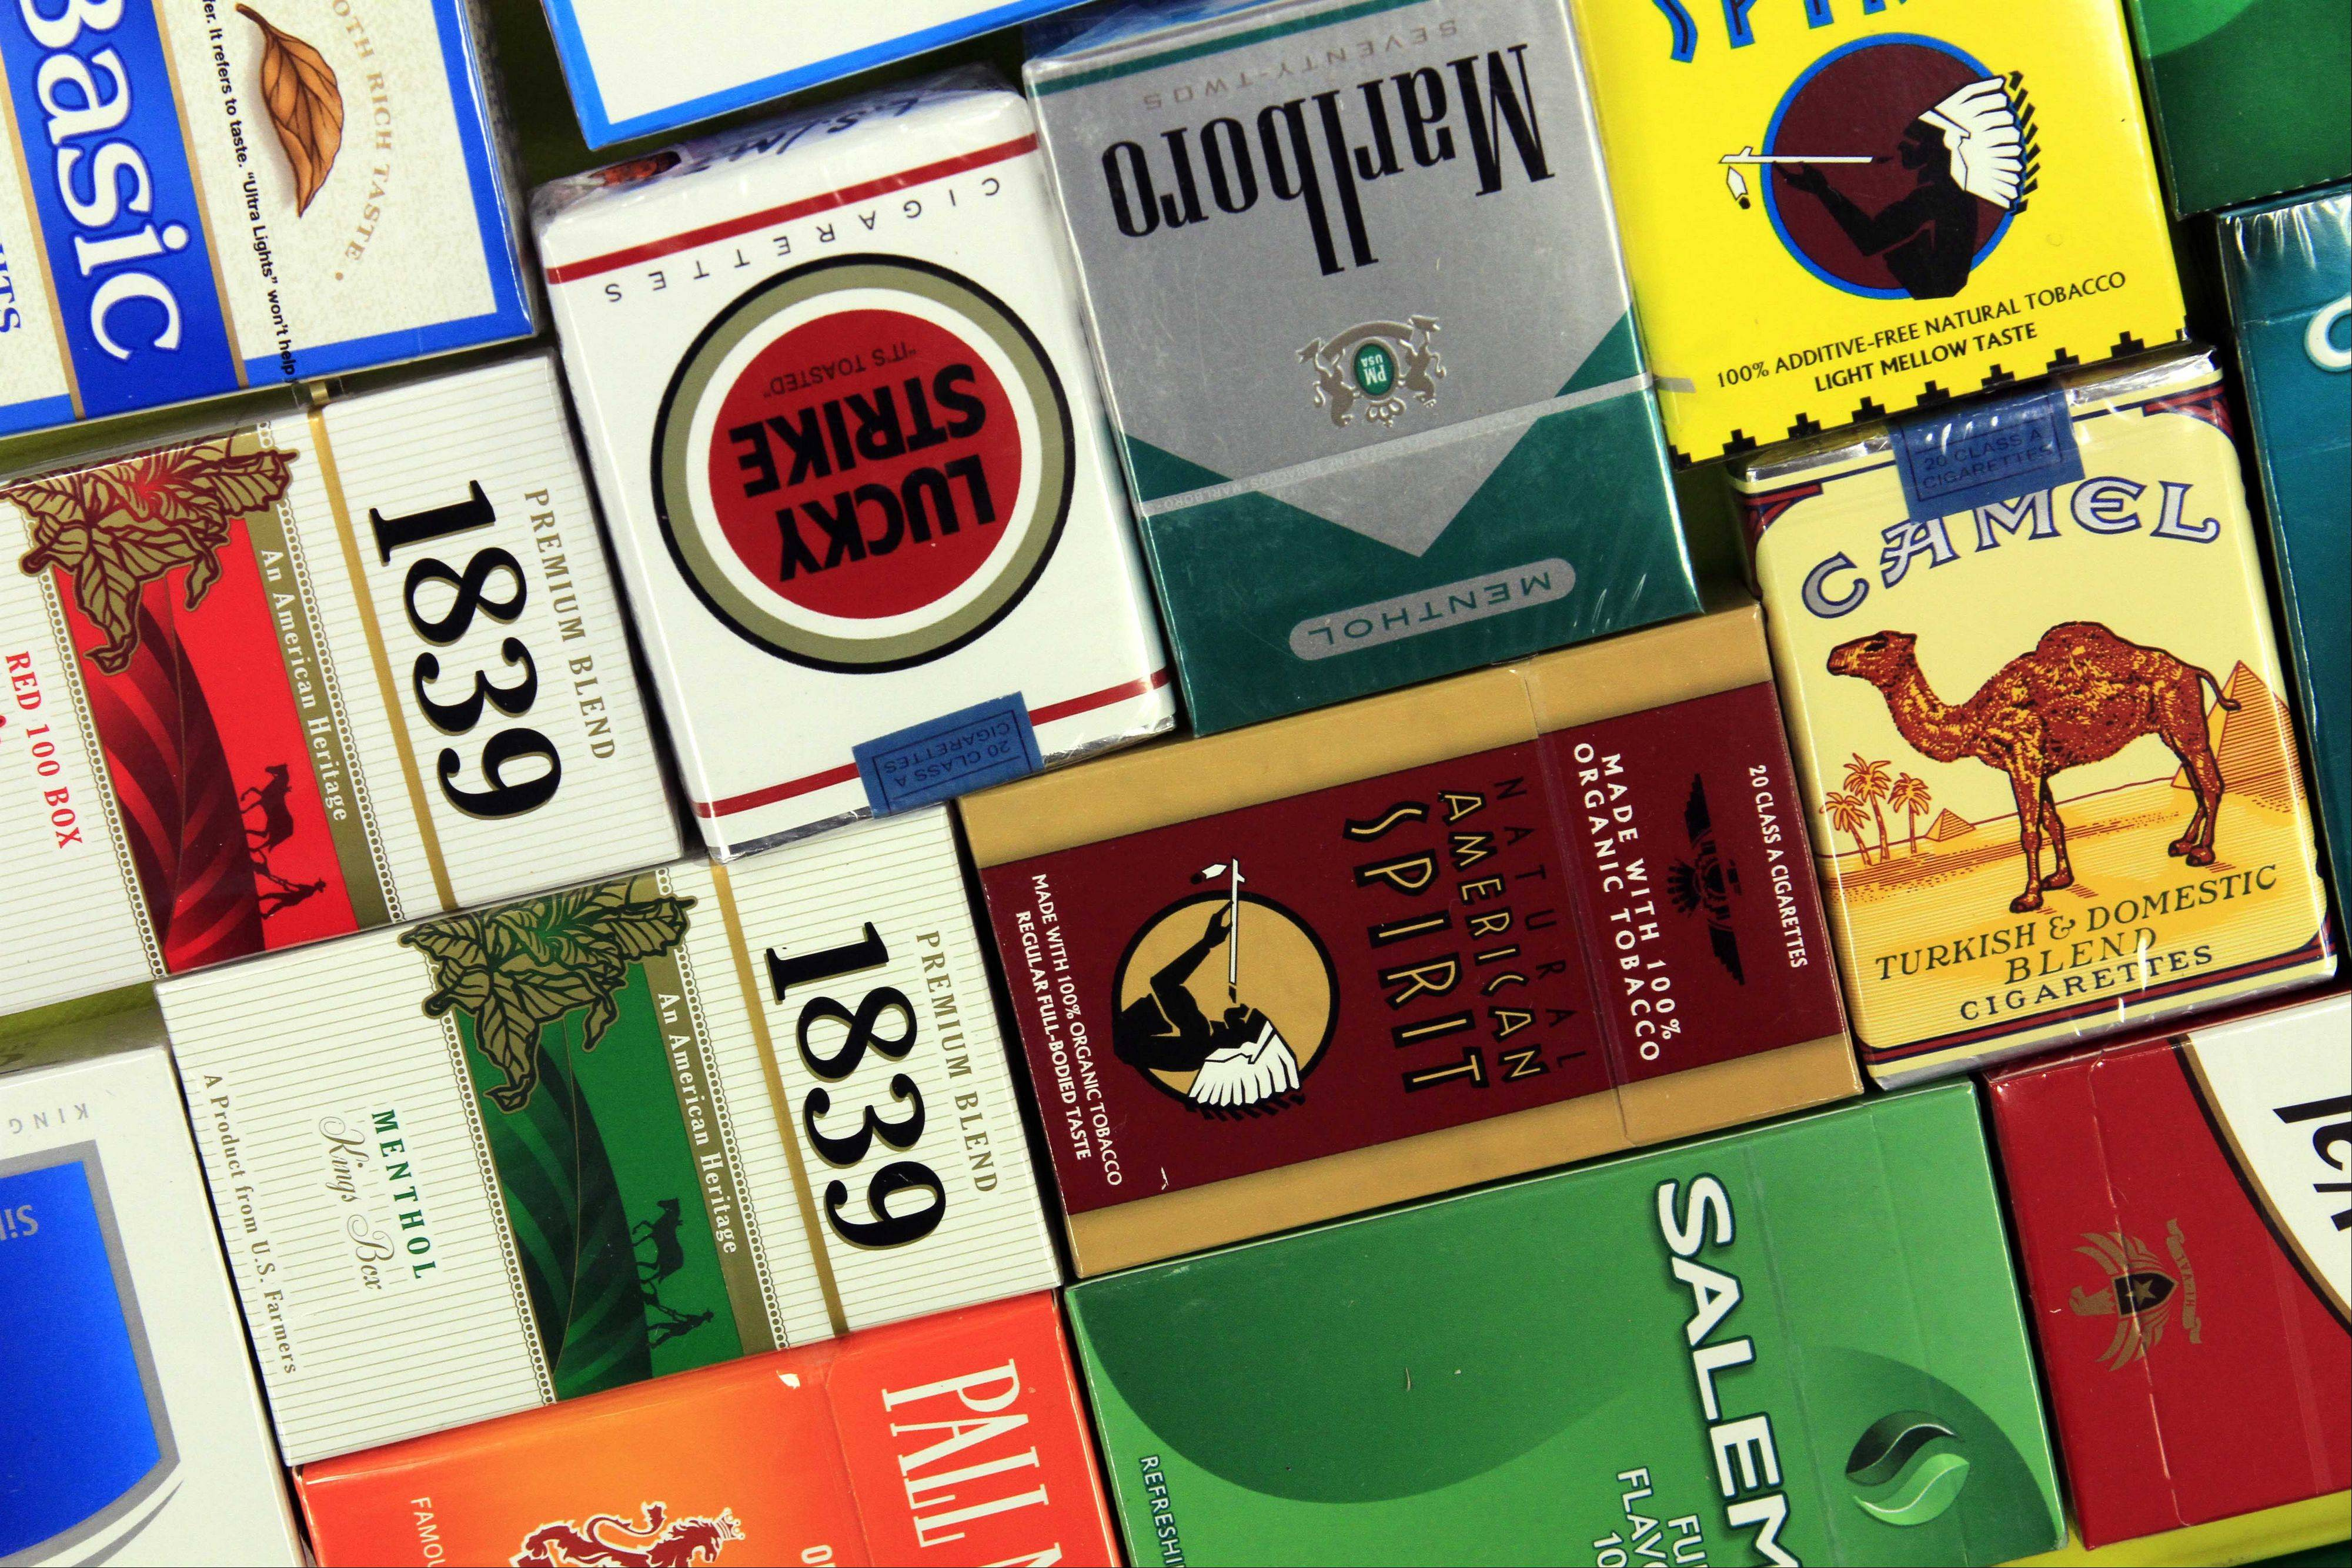 Chicago authorities say they're cracking down on the illegal sale of cigarettes.